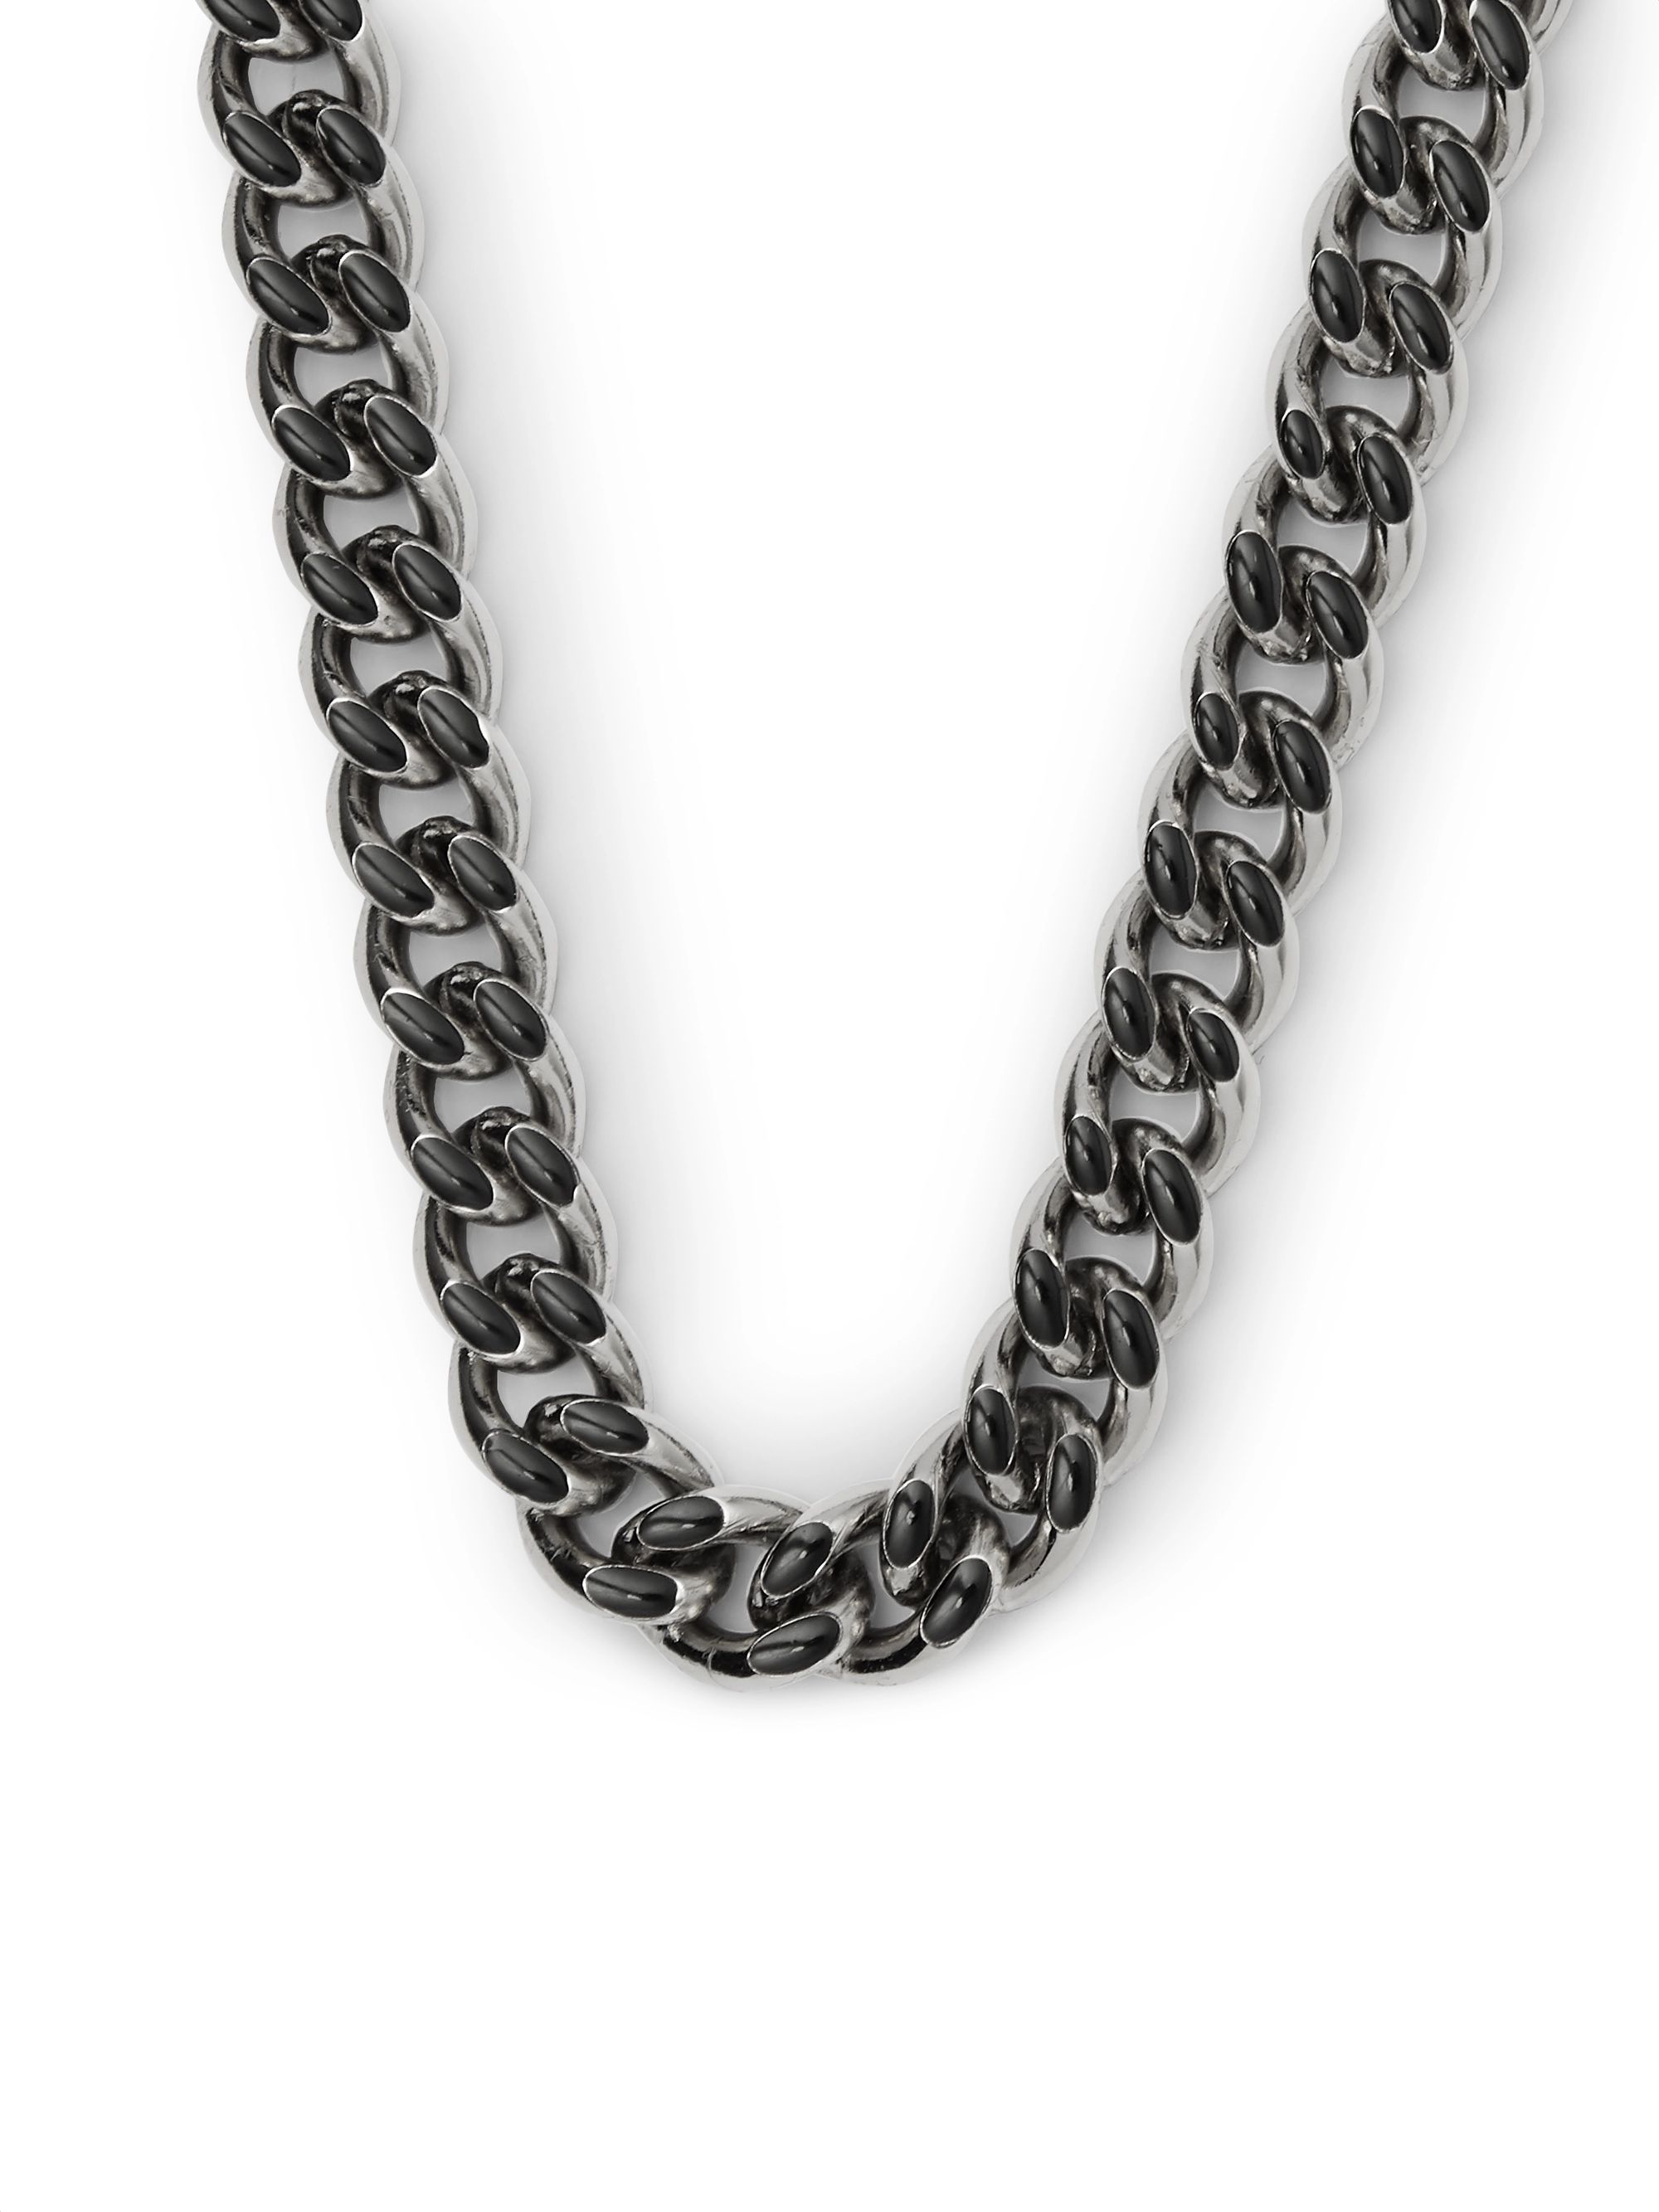 A.P.C. Silver-Tone Necklace